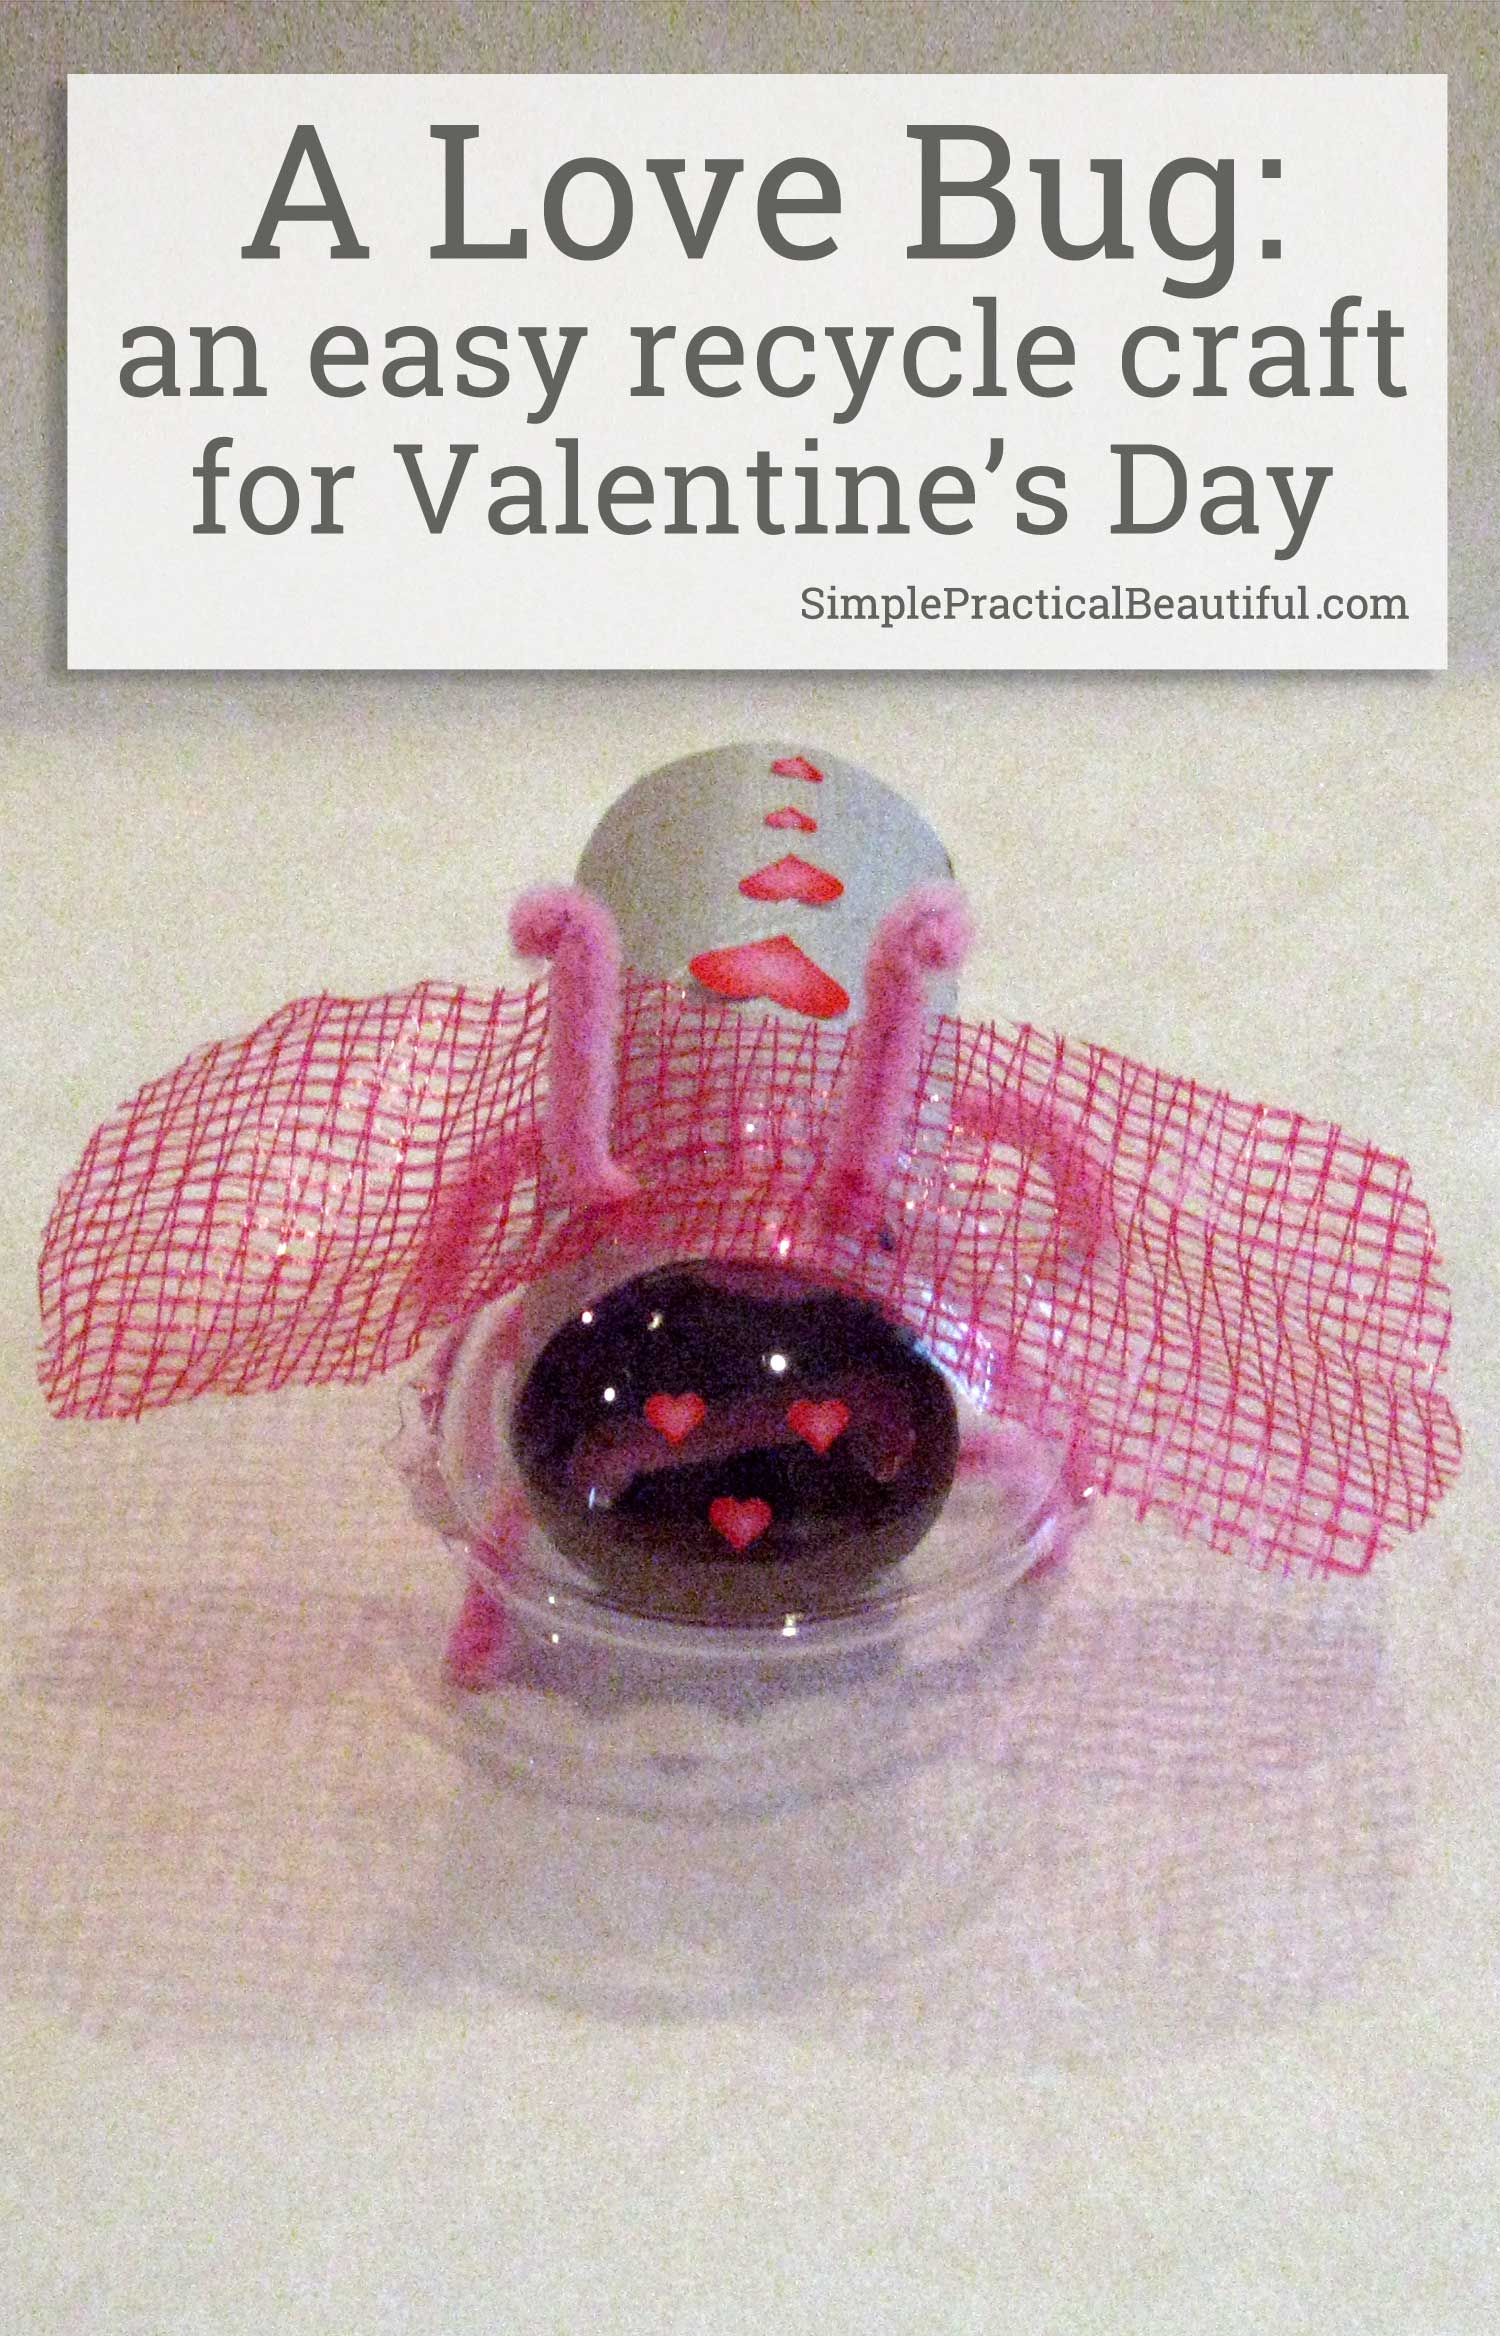 An easy recycle craft for kids, especially Cub Scouts. Perfect for Valentine's Day or the Blue and Gold Dinner decorations